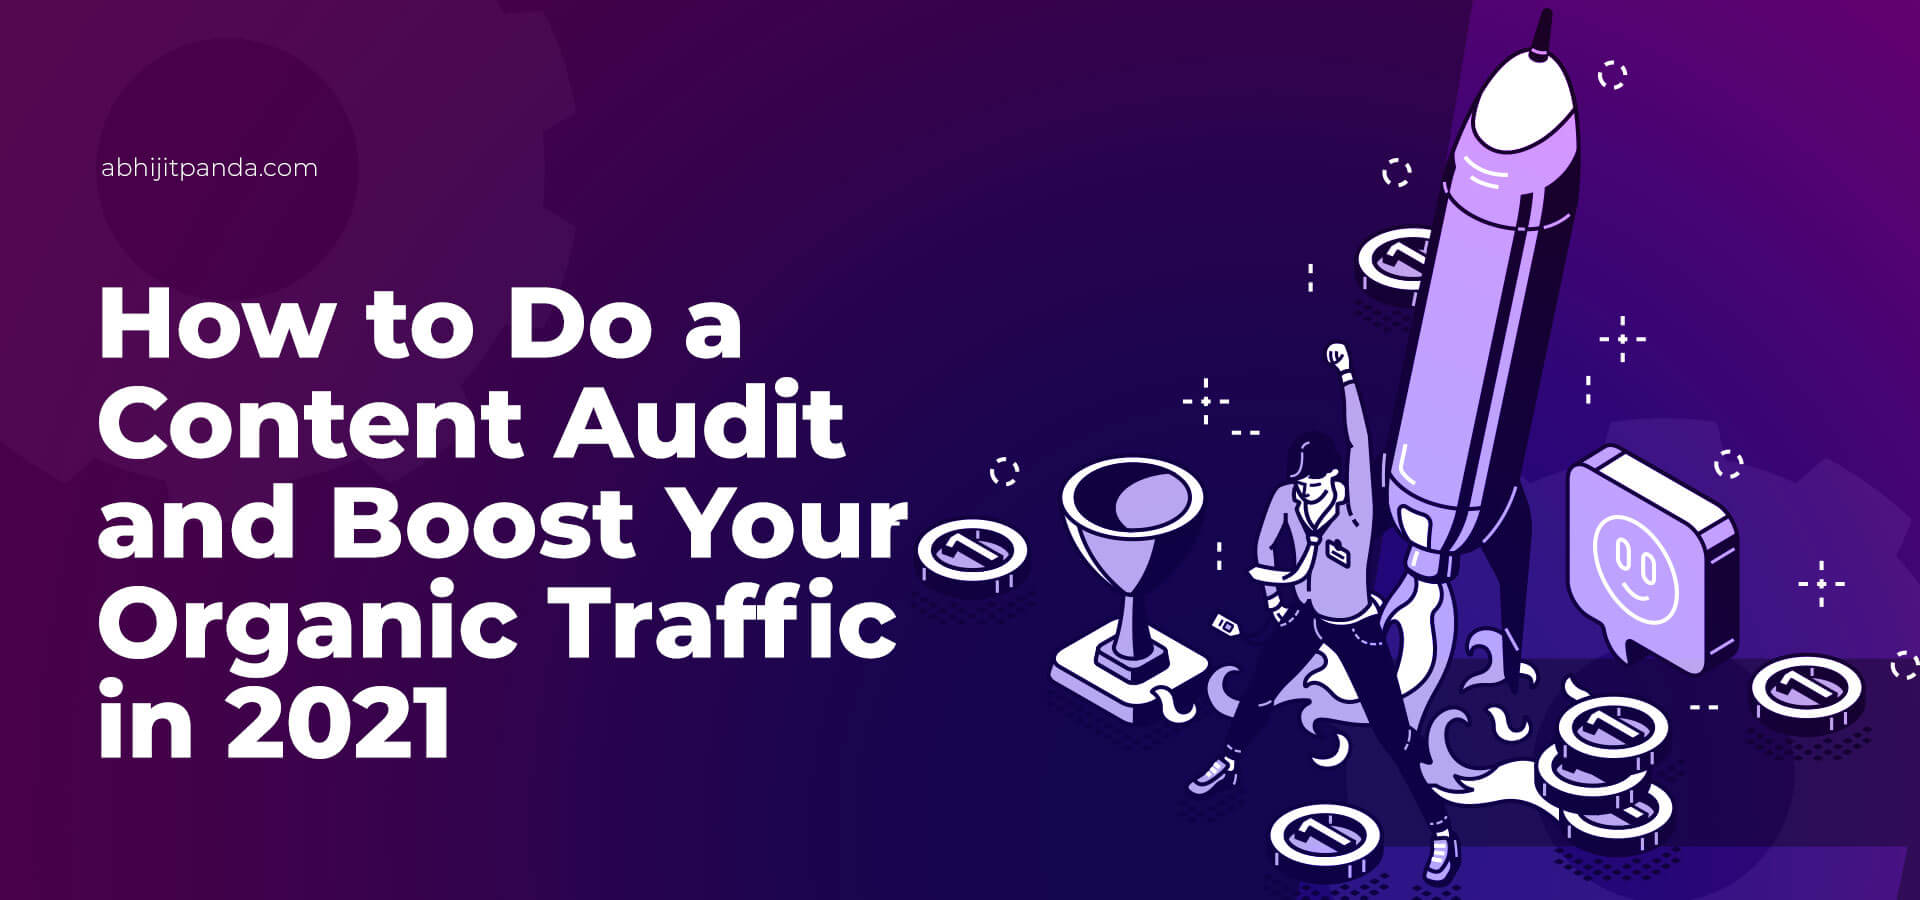 How to Do a Content Audit and Boost Your Organic Traffic